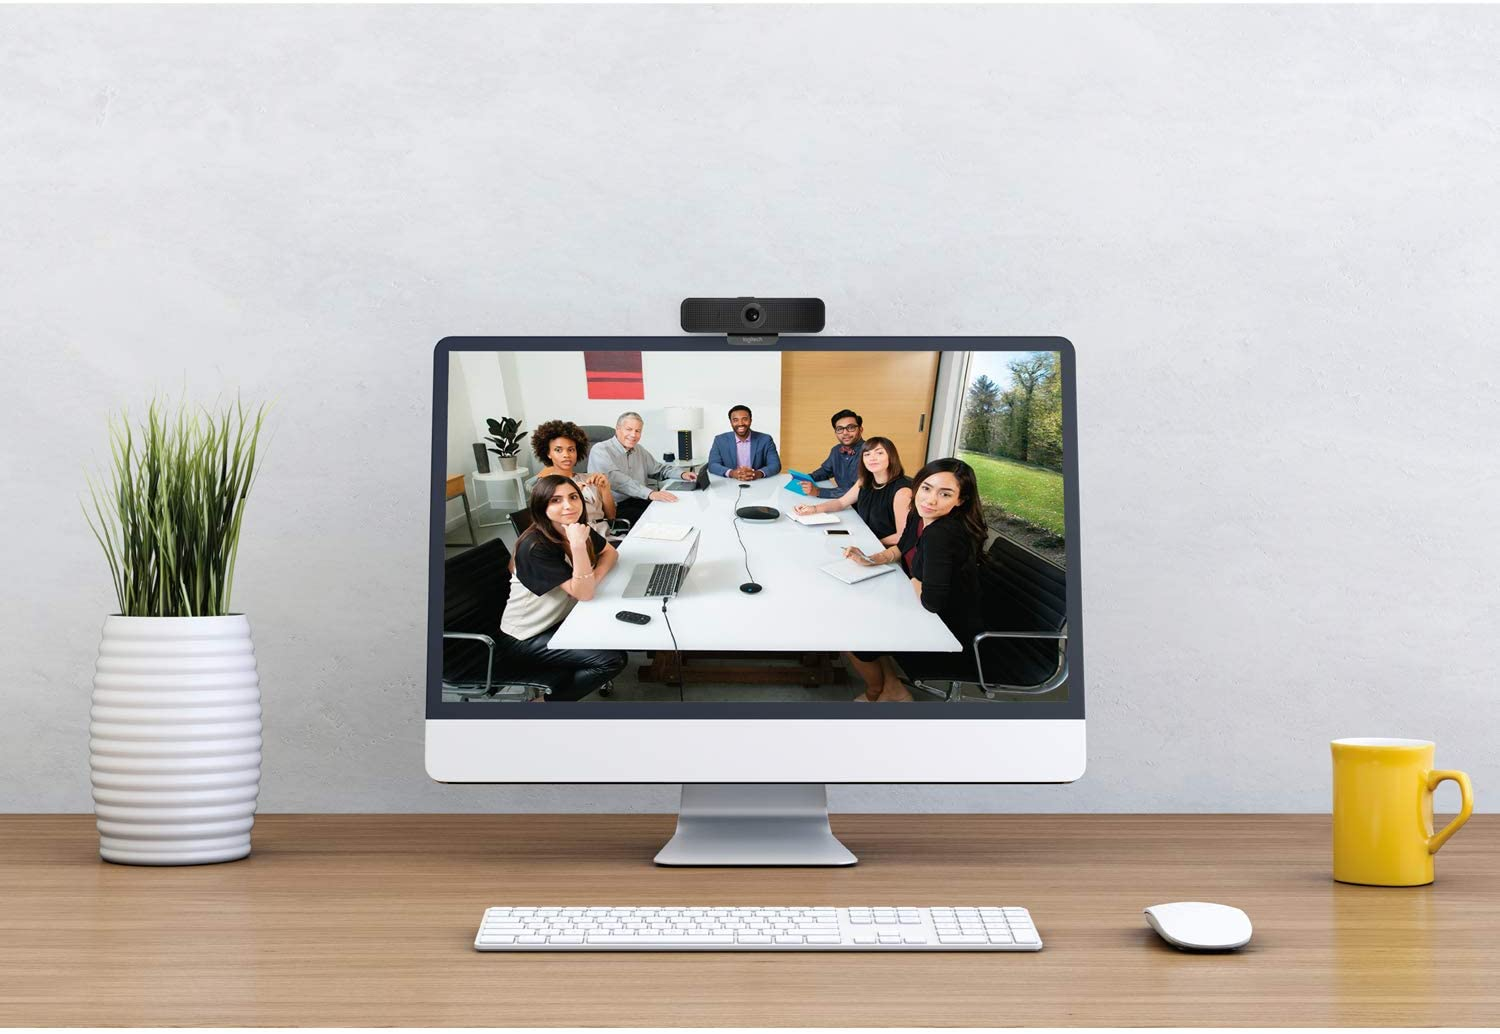 Home office Skype Conferenc Meeting Online